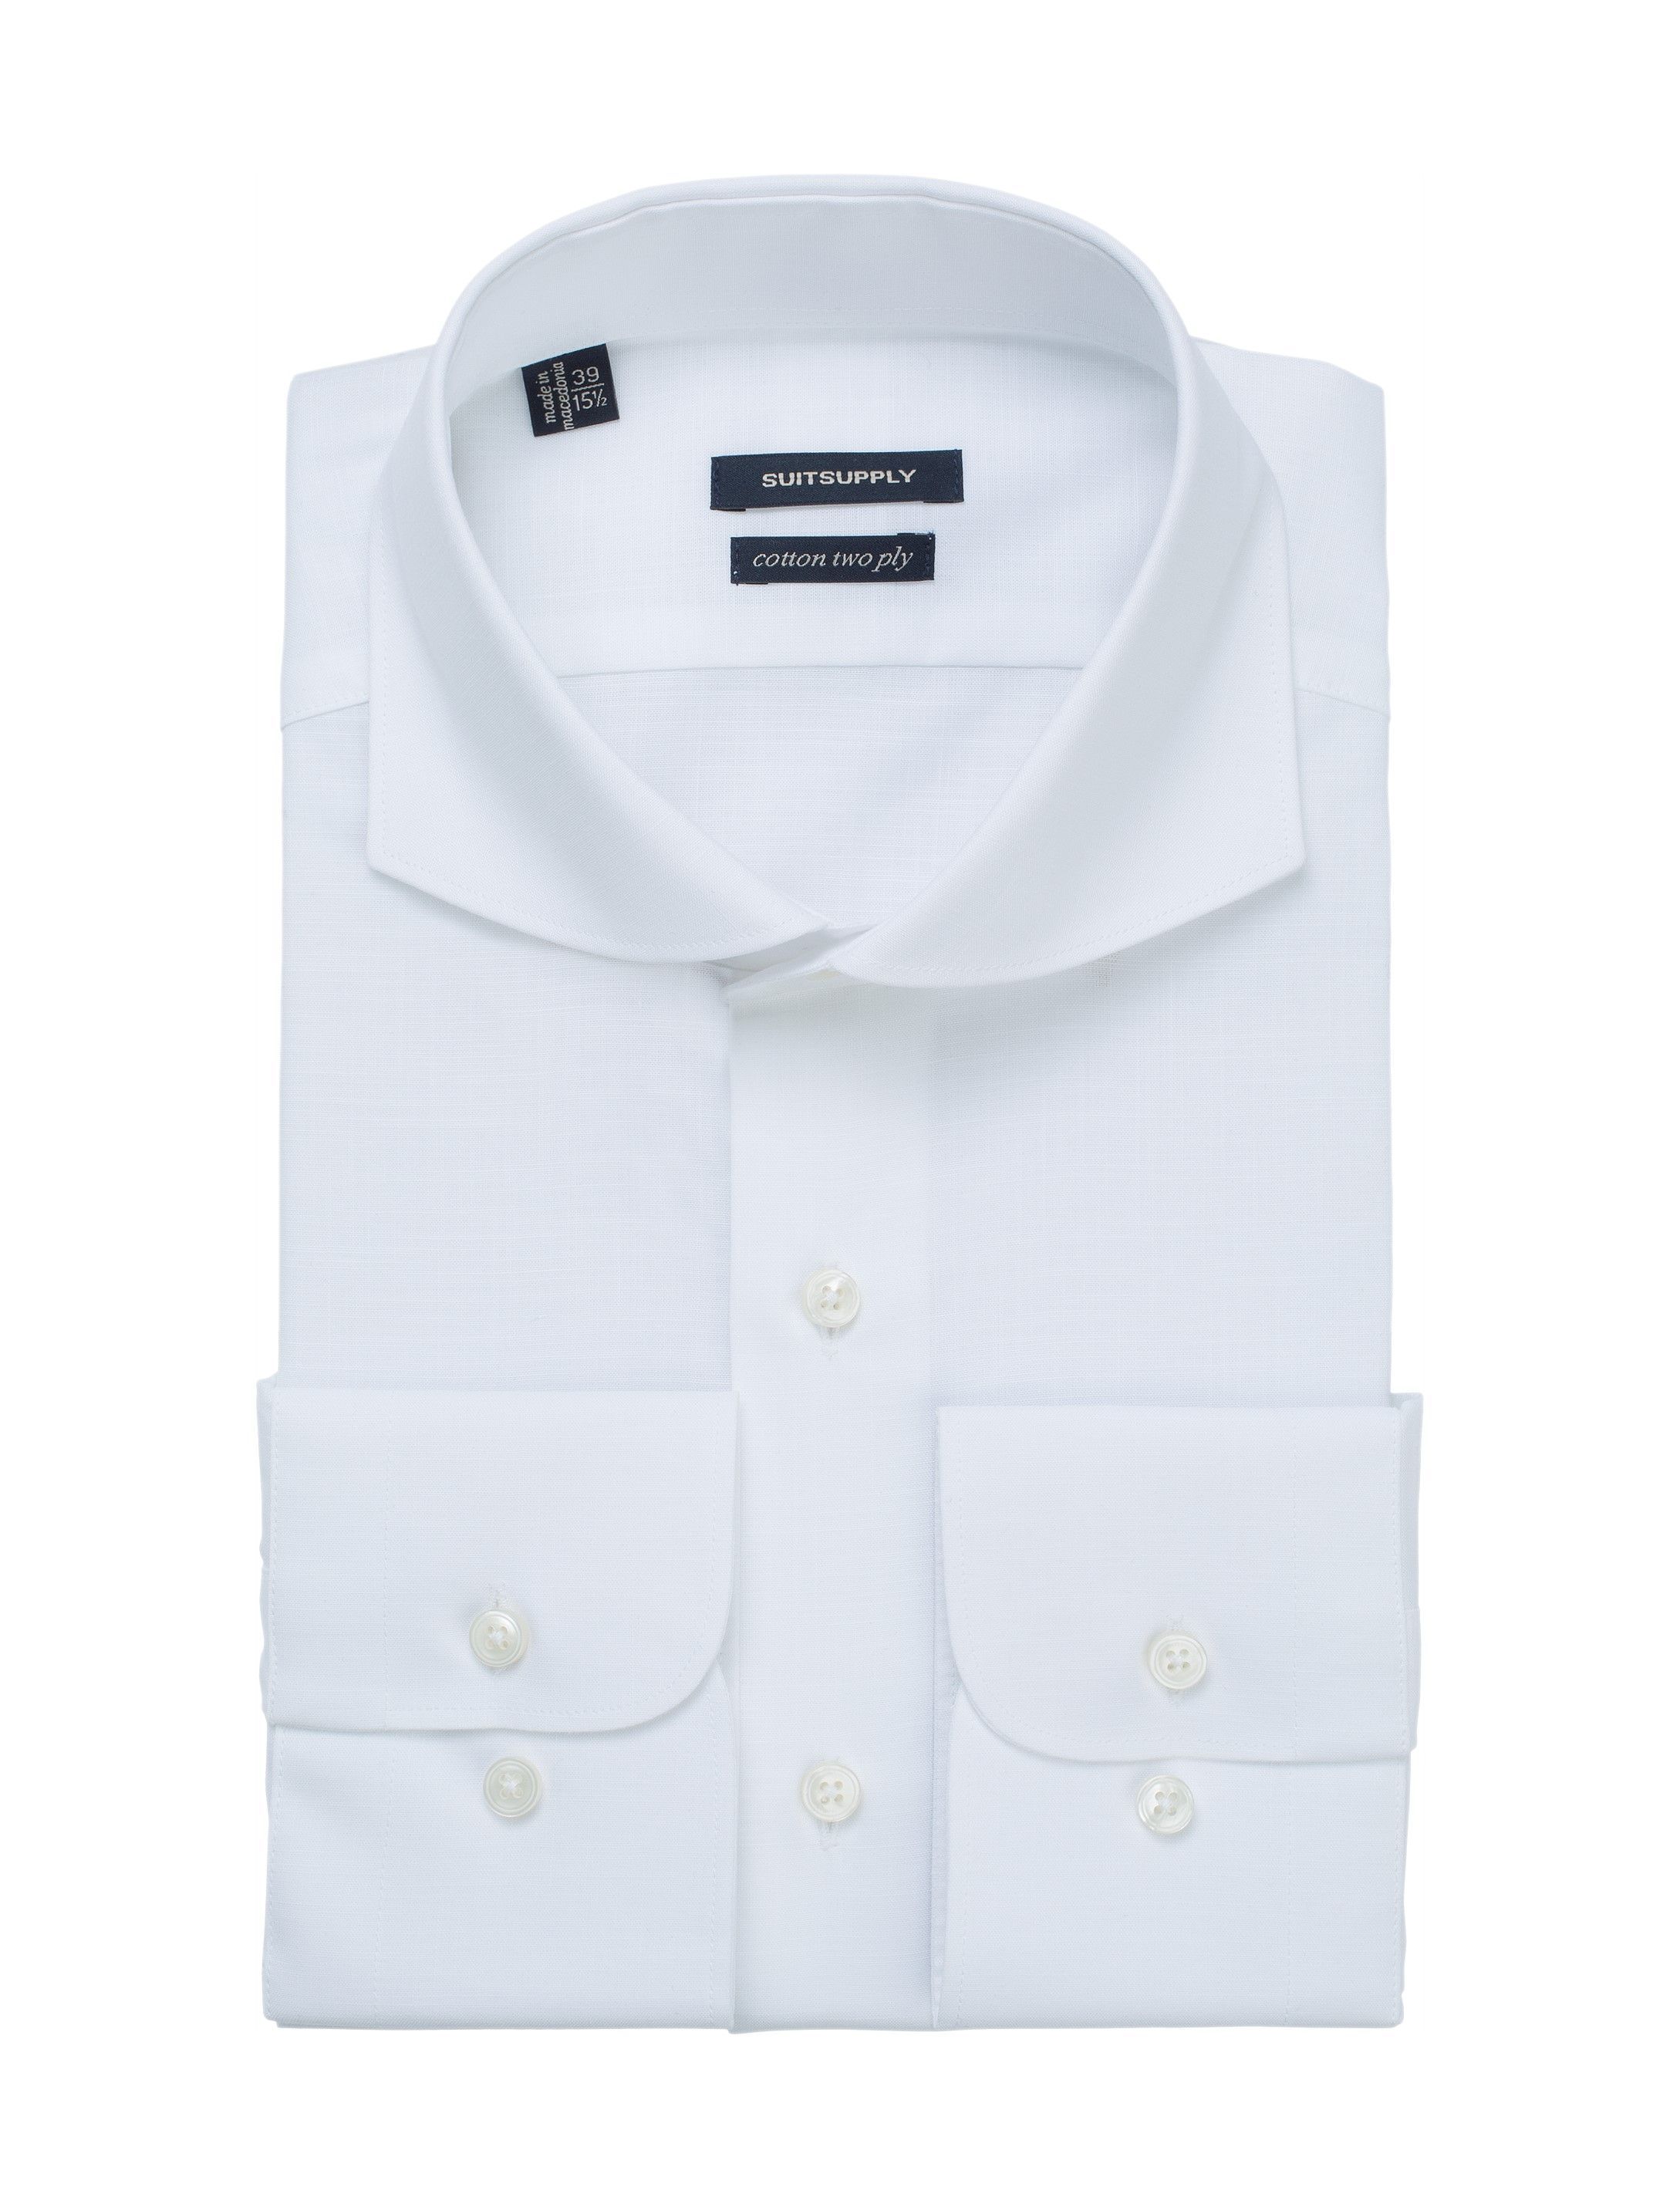 White Shirt Single Cuff H4715 Suitsupply Online Store Stuff To